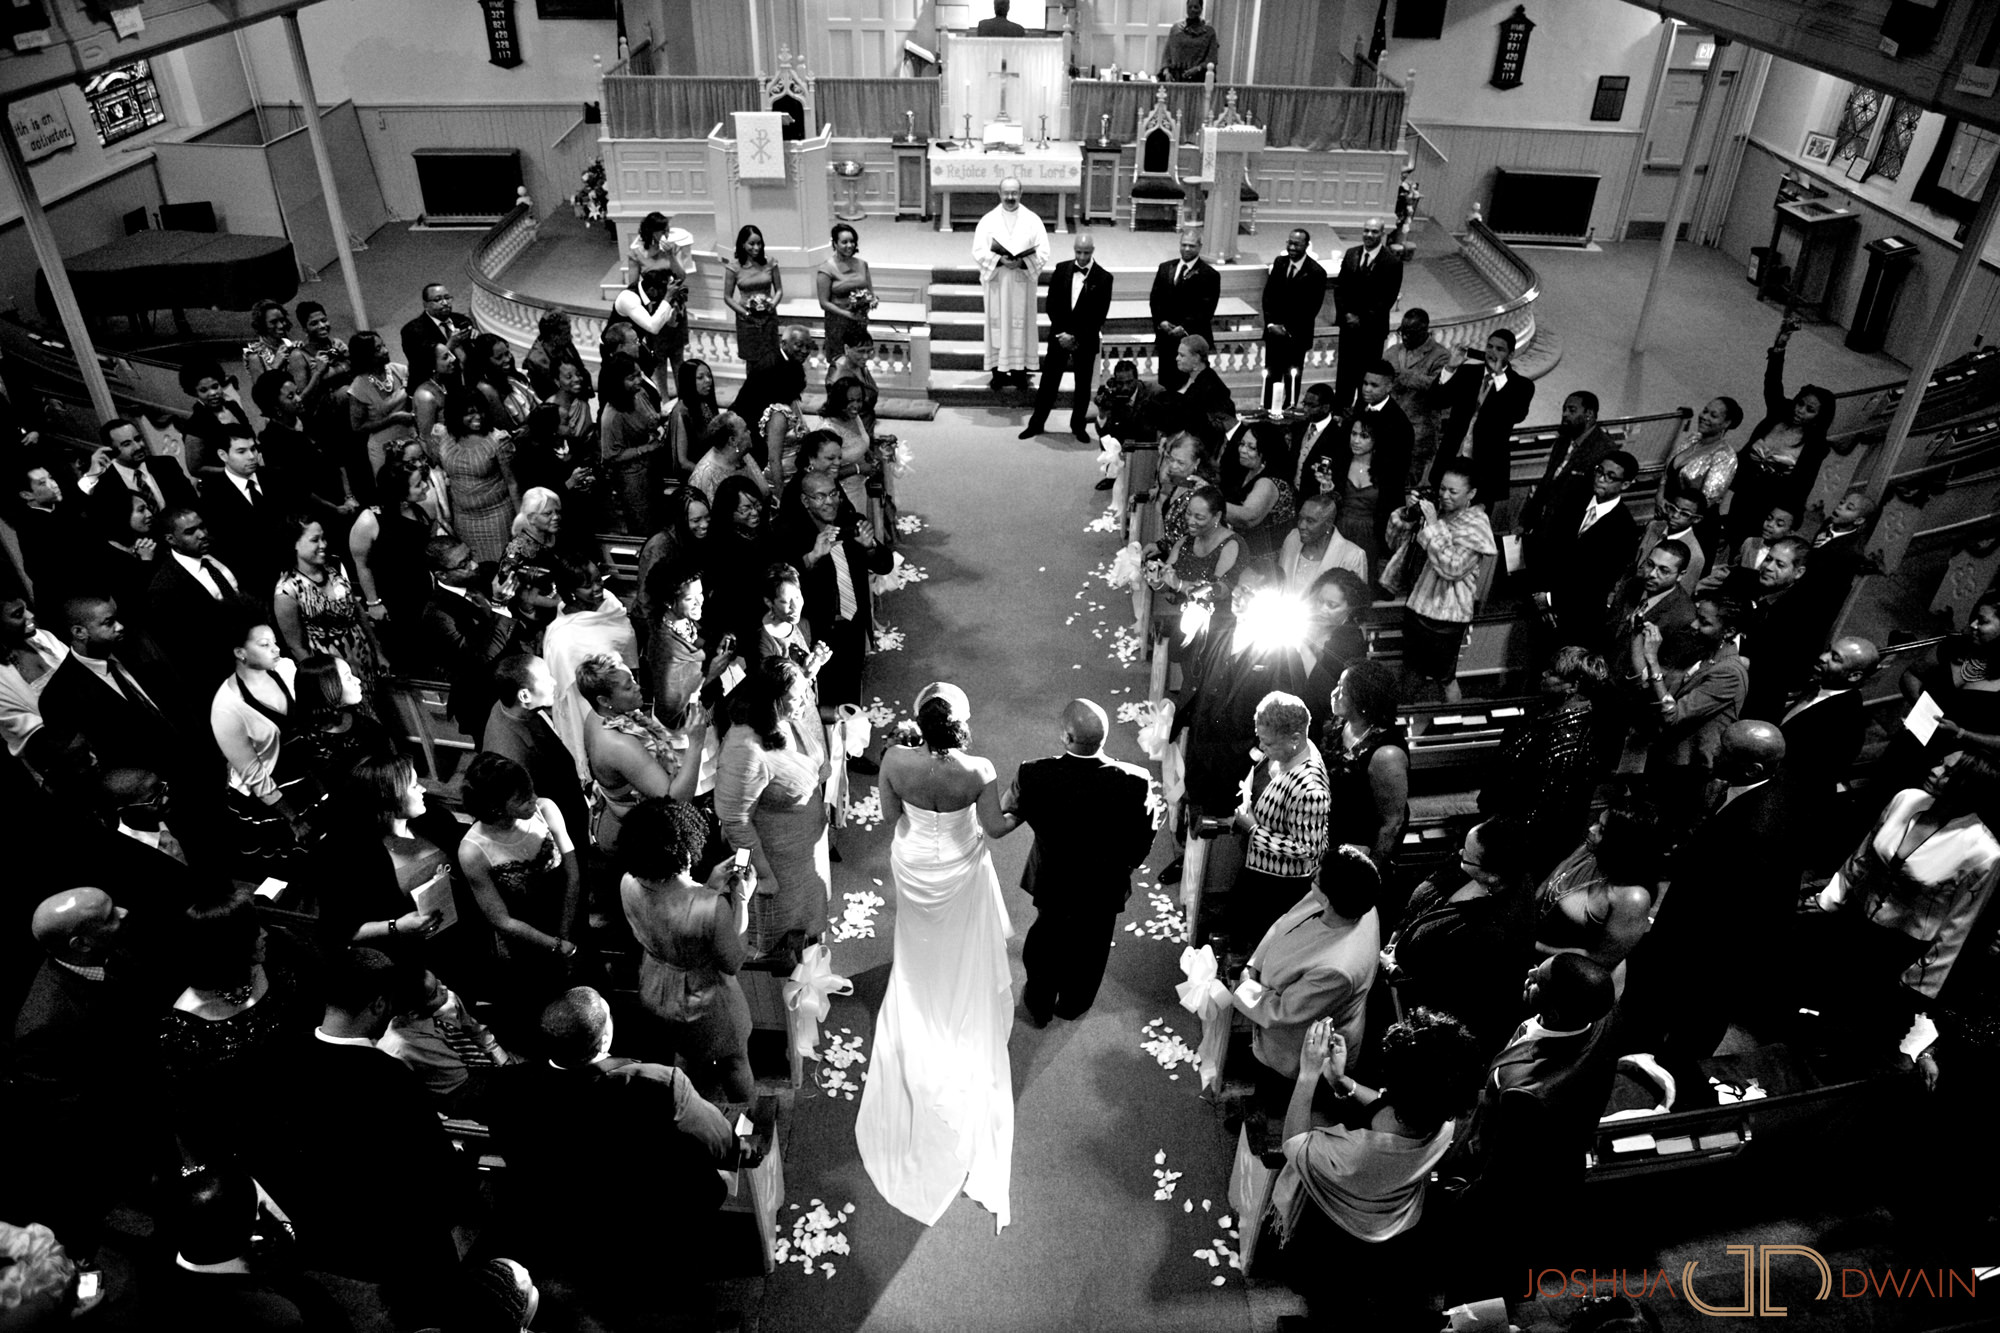 carol-shiloh-012-the-palace-somerset-new-jerseywedding-photographer-joshua-dwain-2011-11-25_cs_407